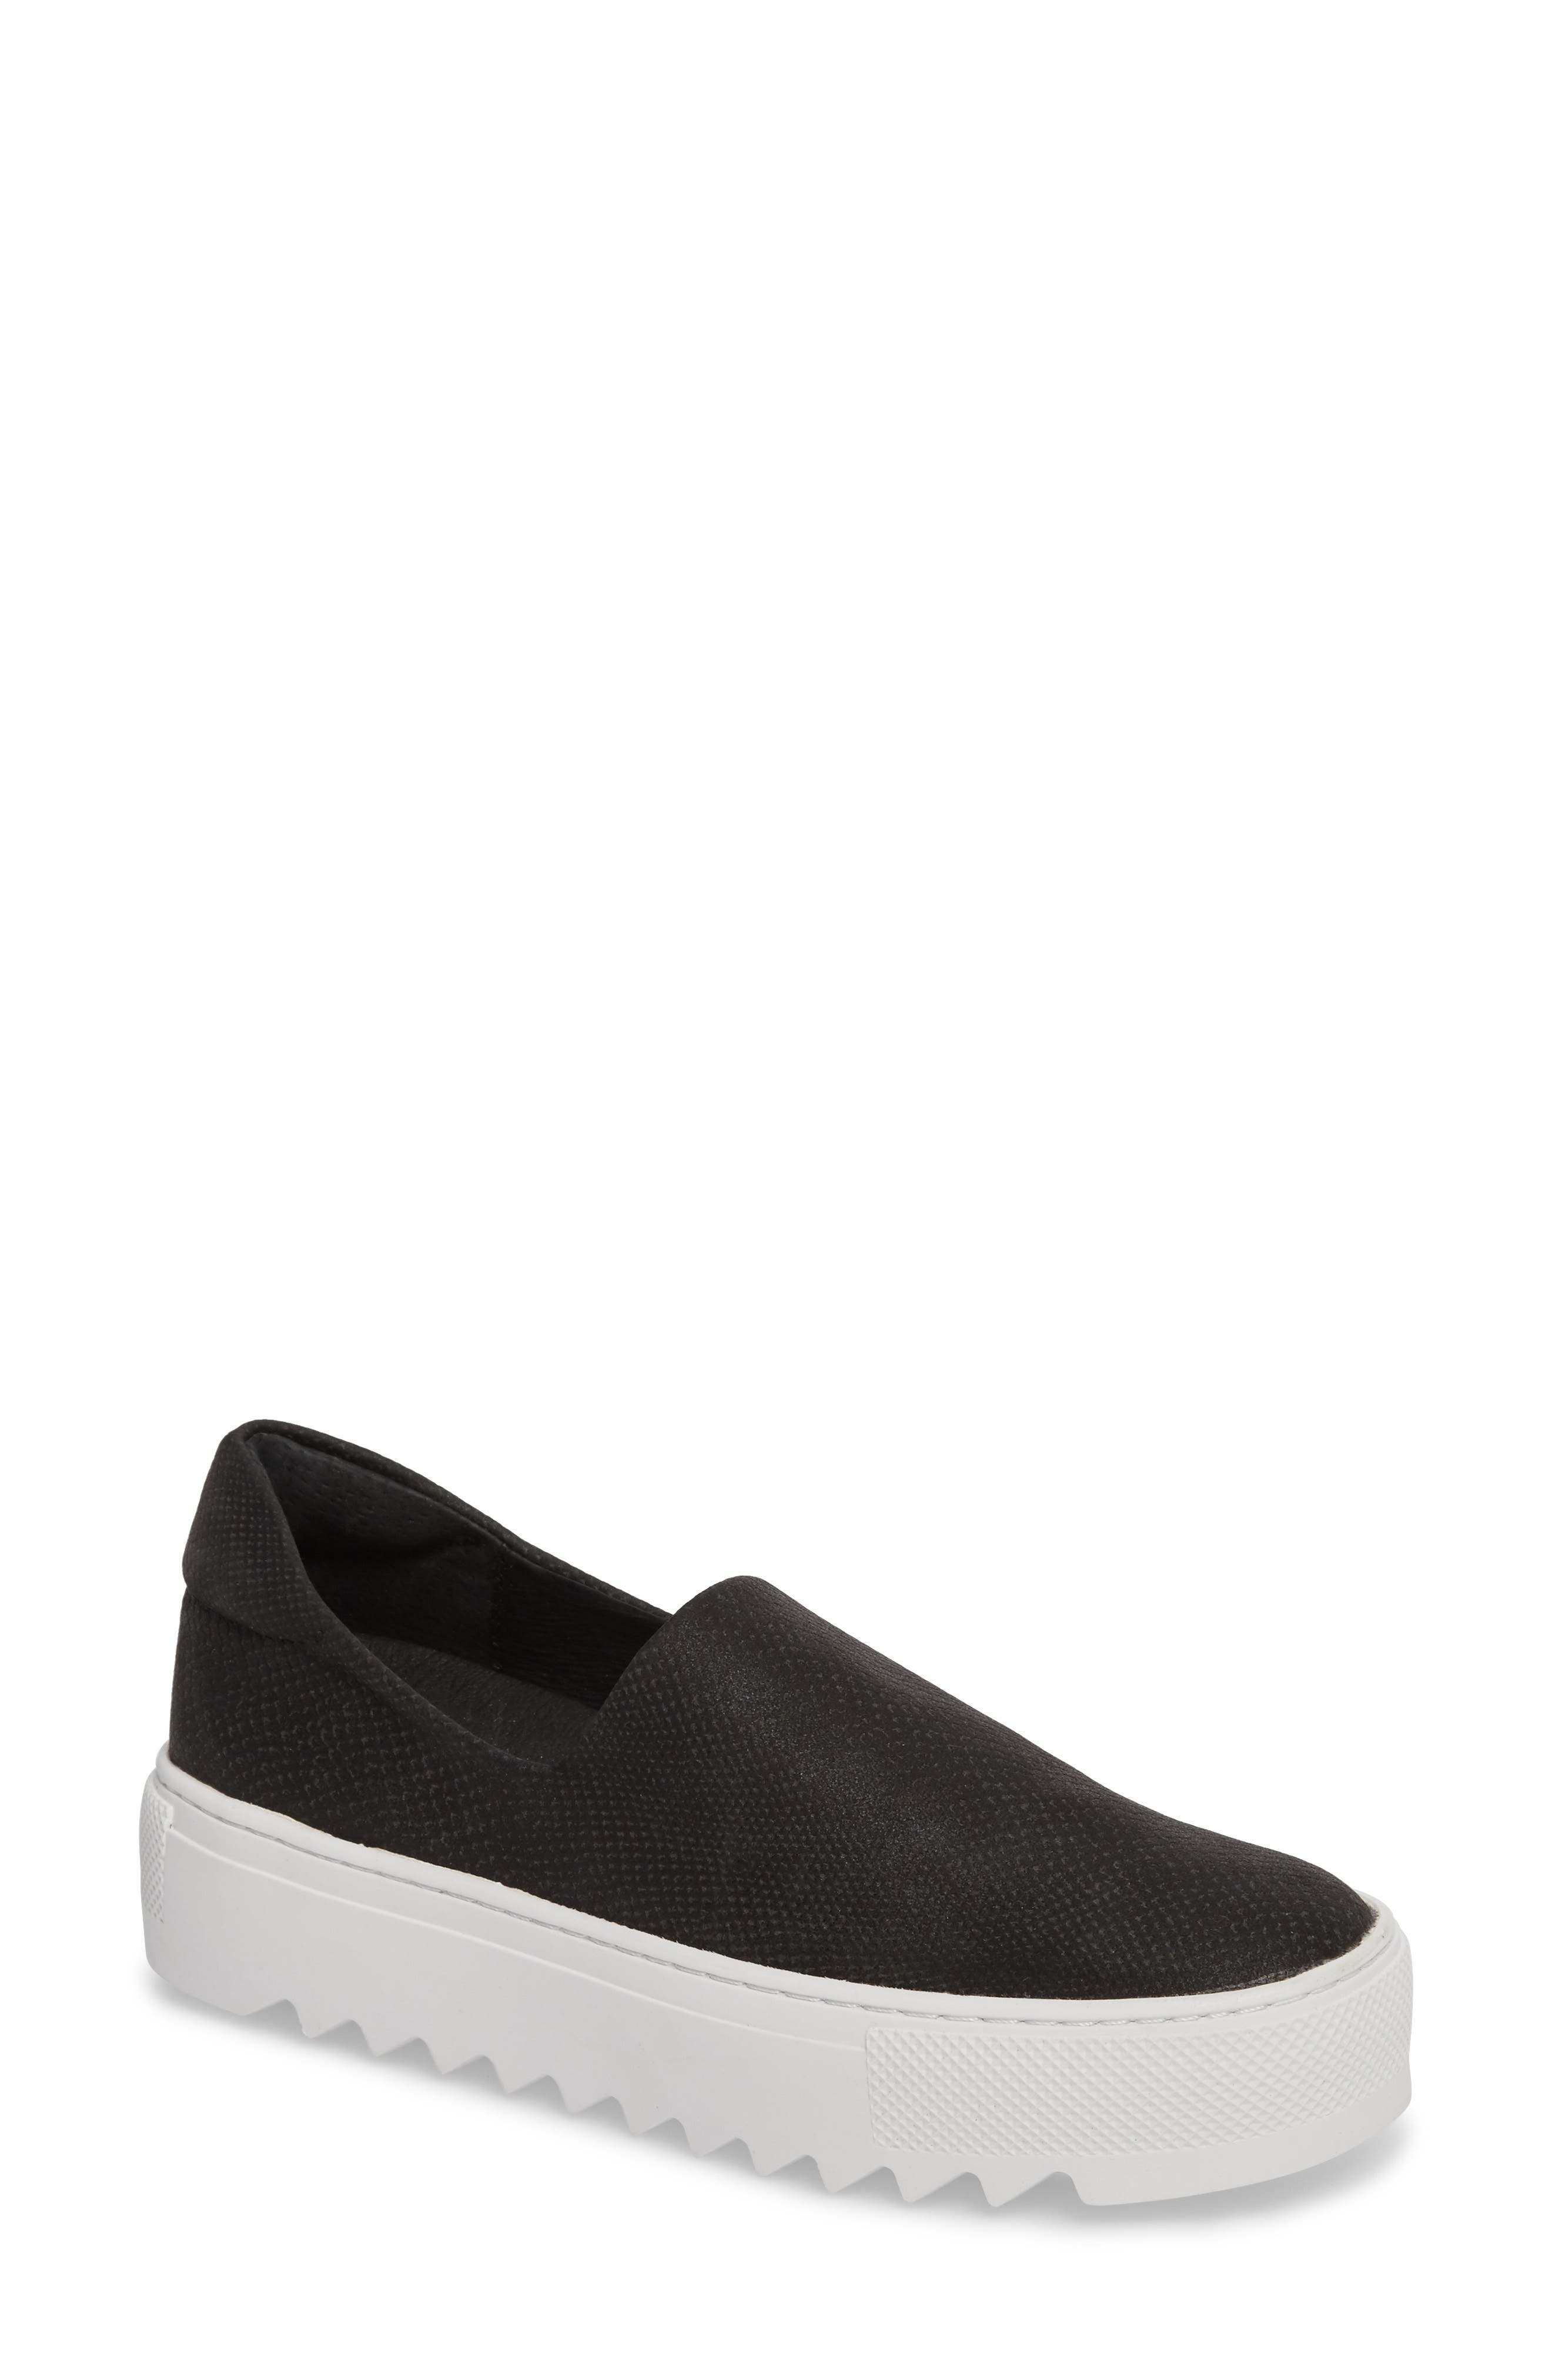 Sage Platform Slip-On Sneaker,                         Main,                         color, BLACK MIX FABRIC